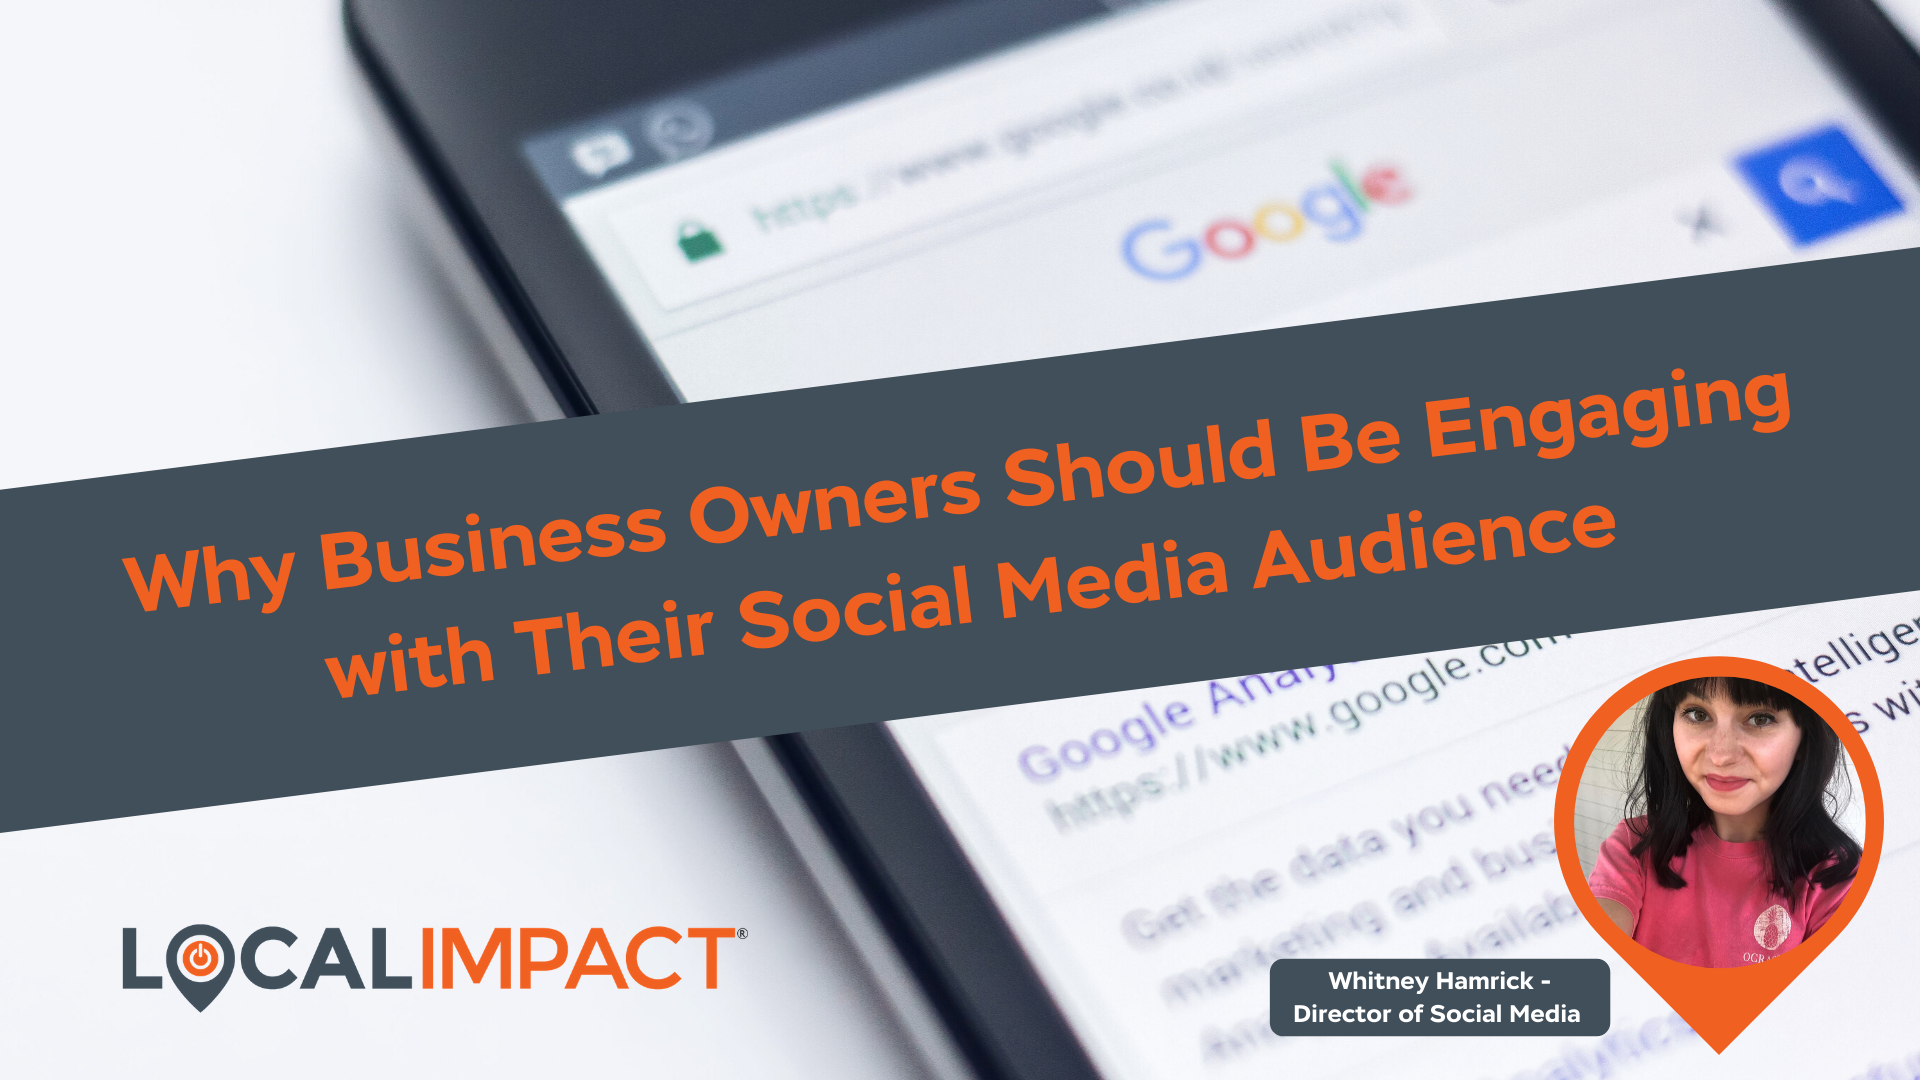 Why Businesses Engage with Their Social Media Audience